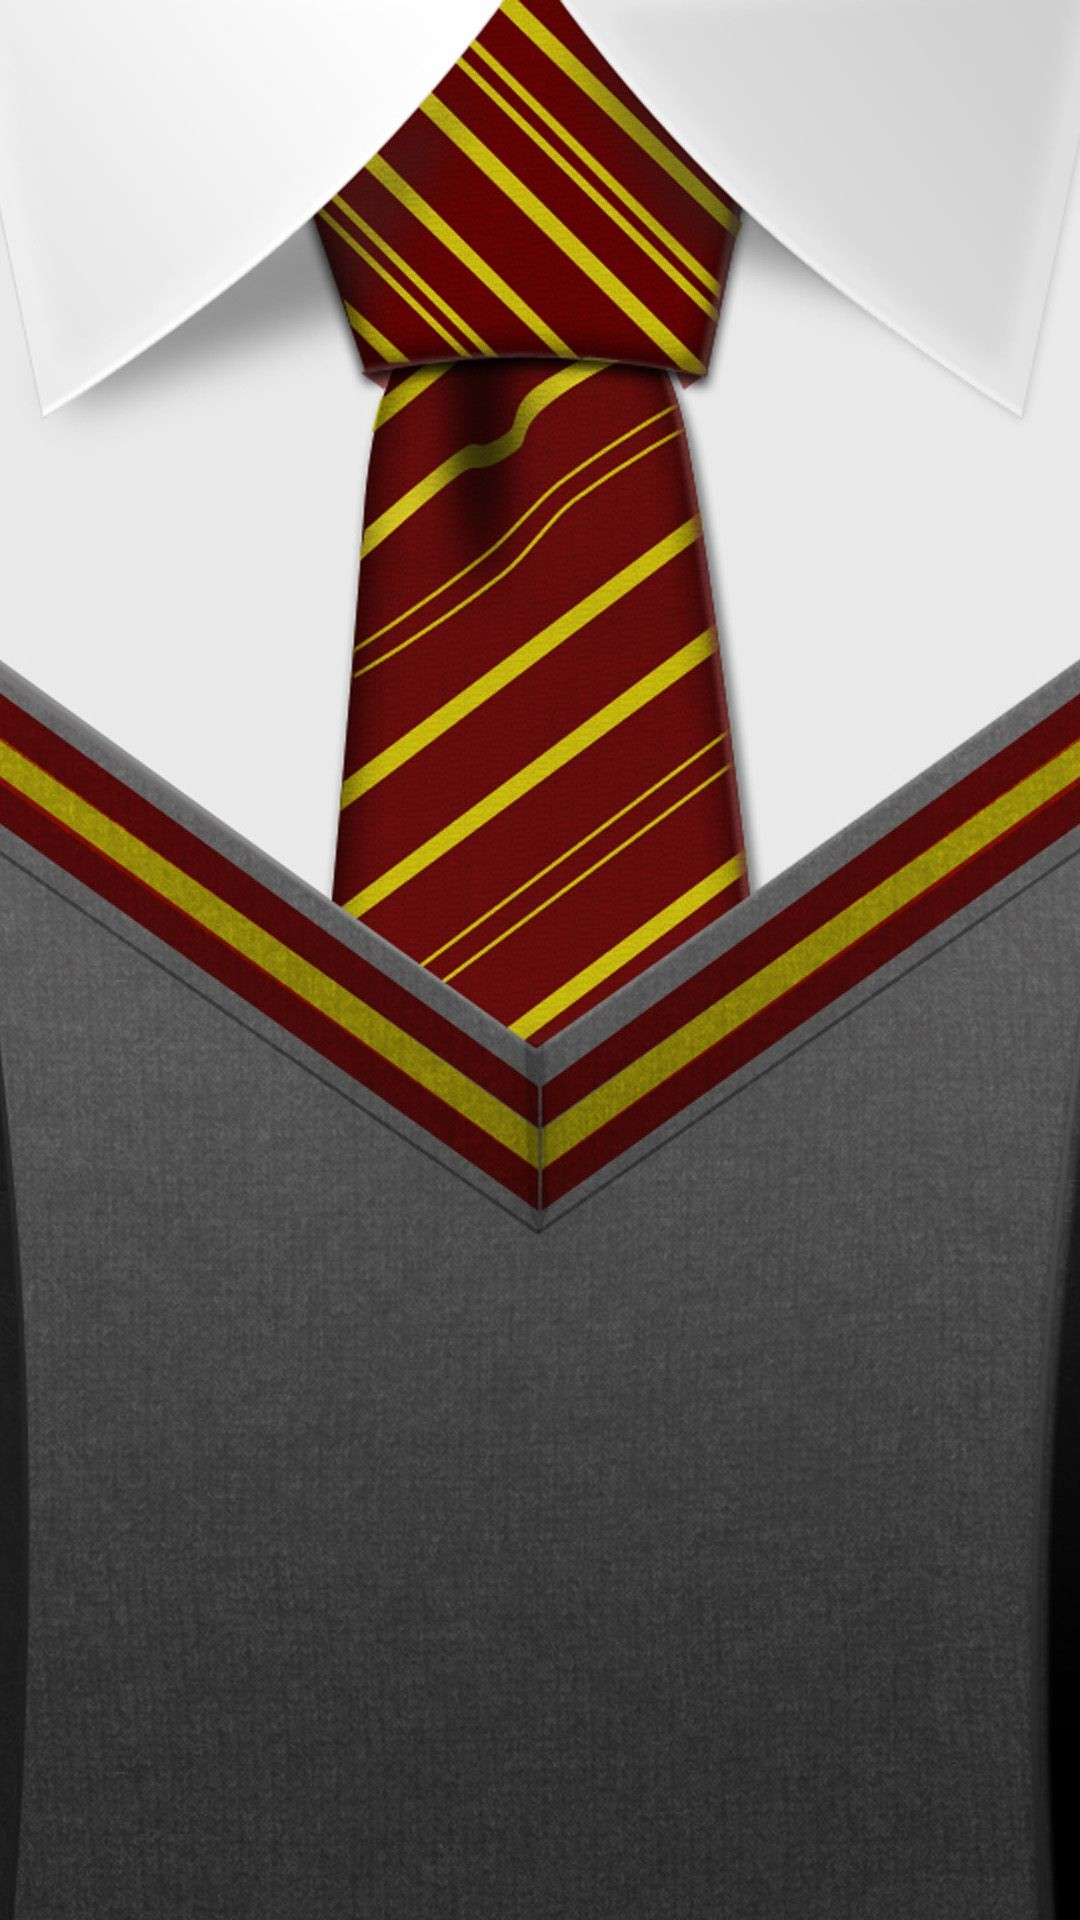 Res: 1080x1920, HD version of the Ravenclaw iPhone wallpaper.me Ravenclaw tie HD, iPhone  wall